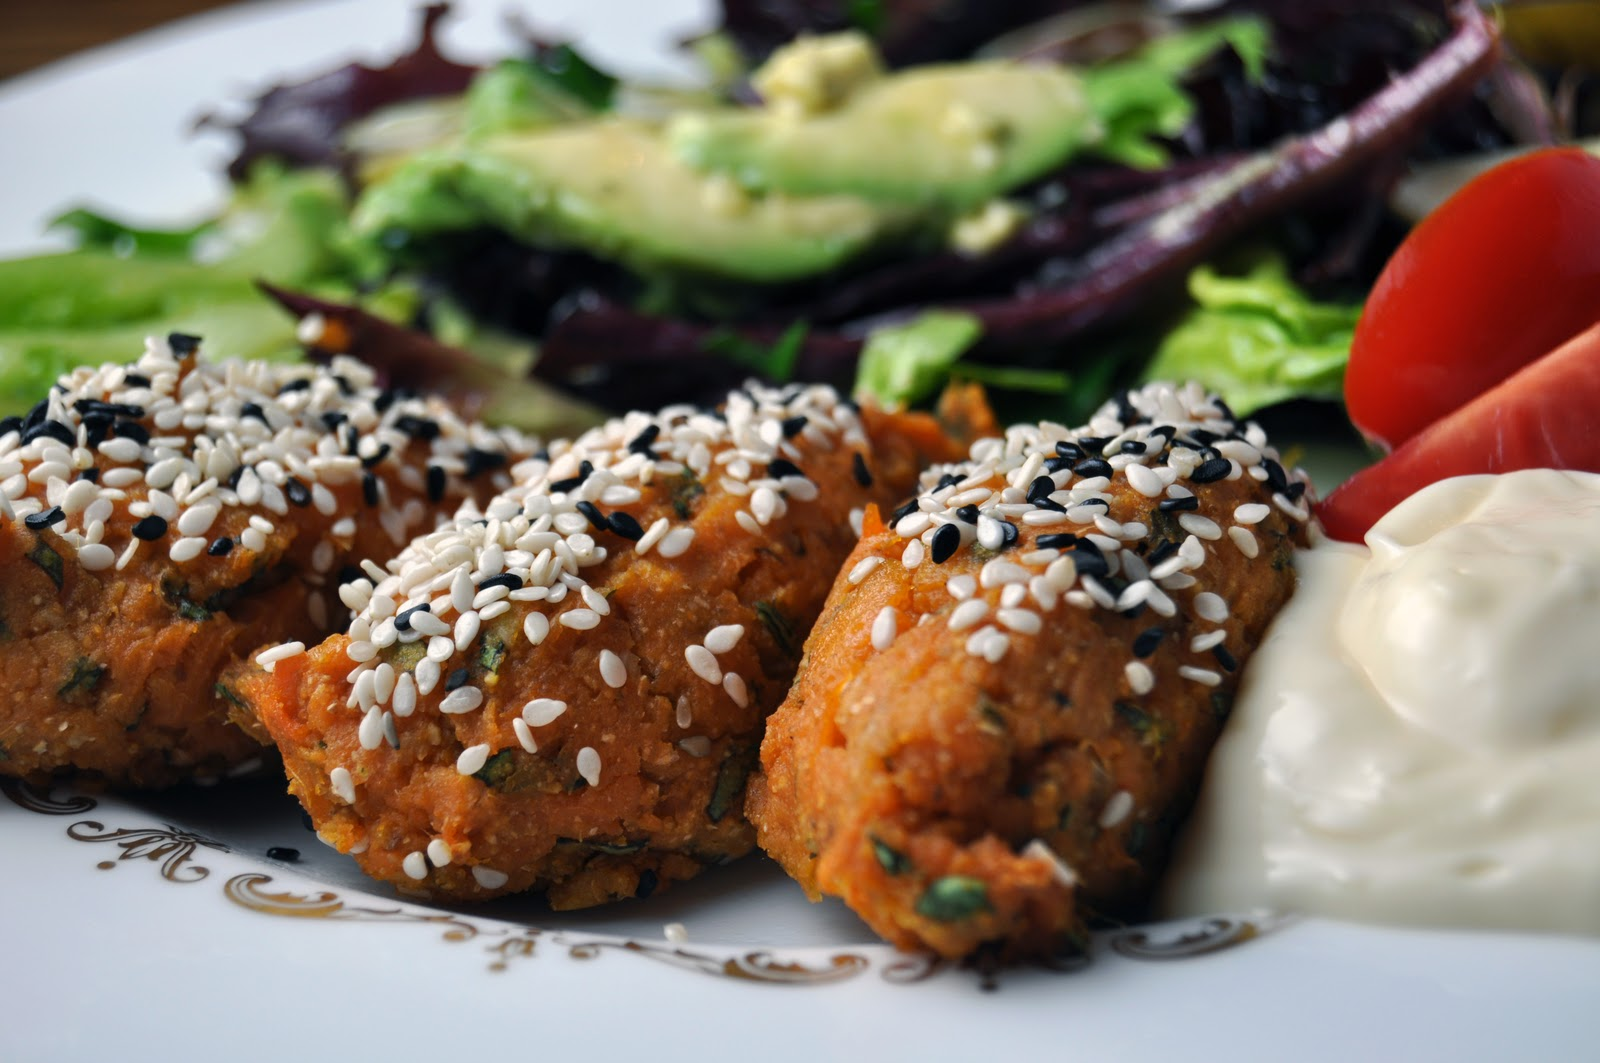 Impeccable Taste: Sweet Potato Falafel and a Green Salad